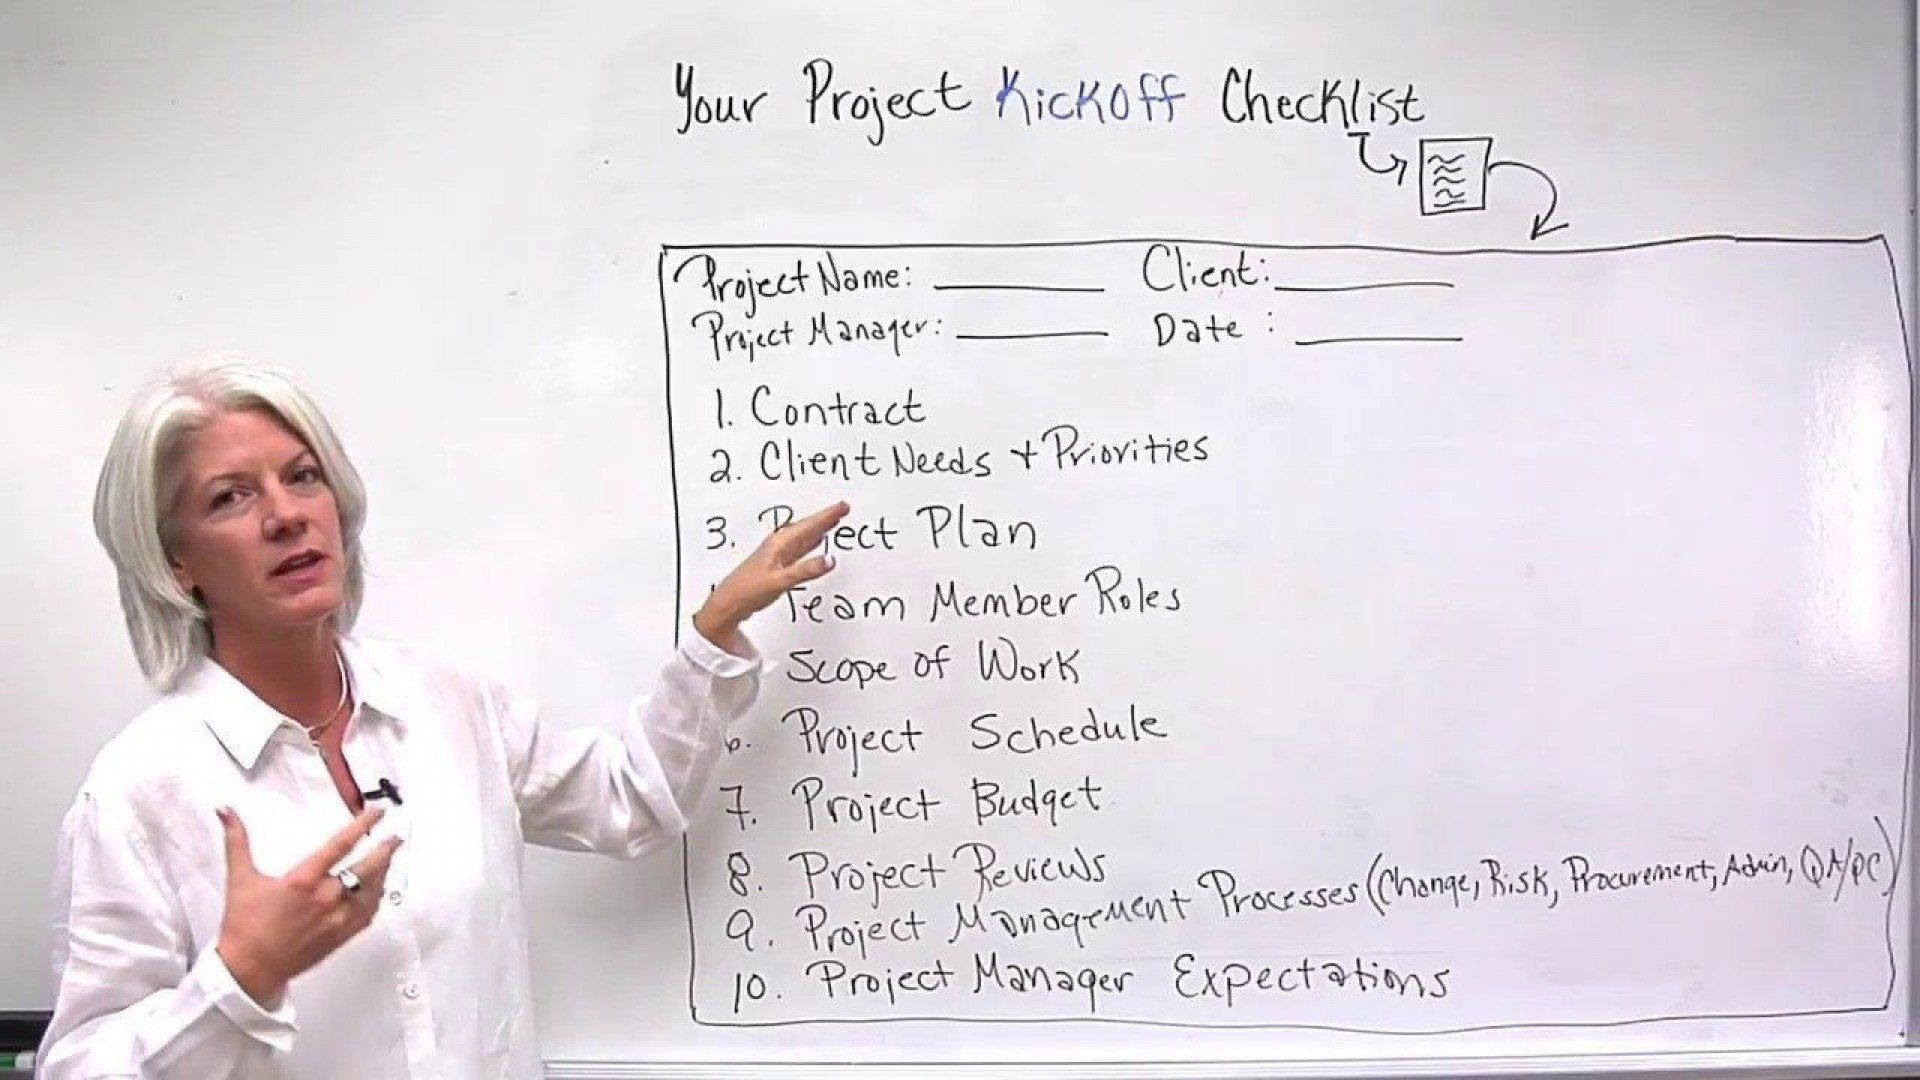 004 Rare Project Management Kick Off Meeting Agenda Template Highest Clarity  Kickoff1920